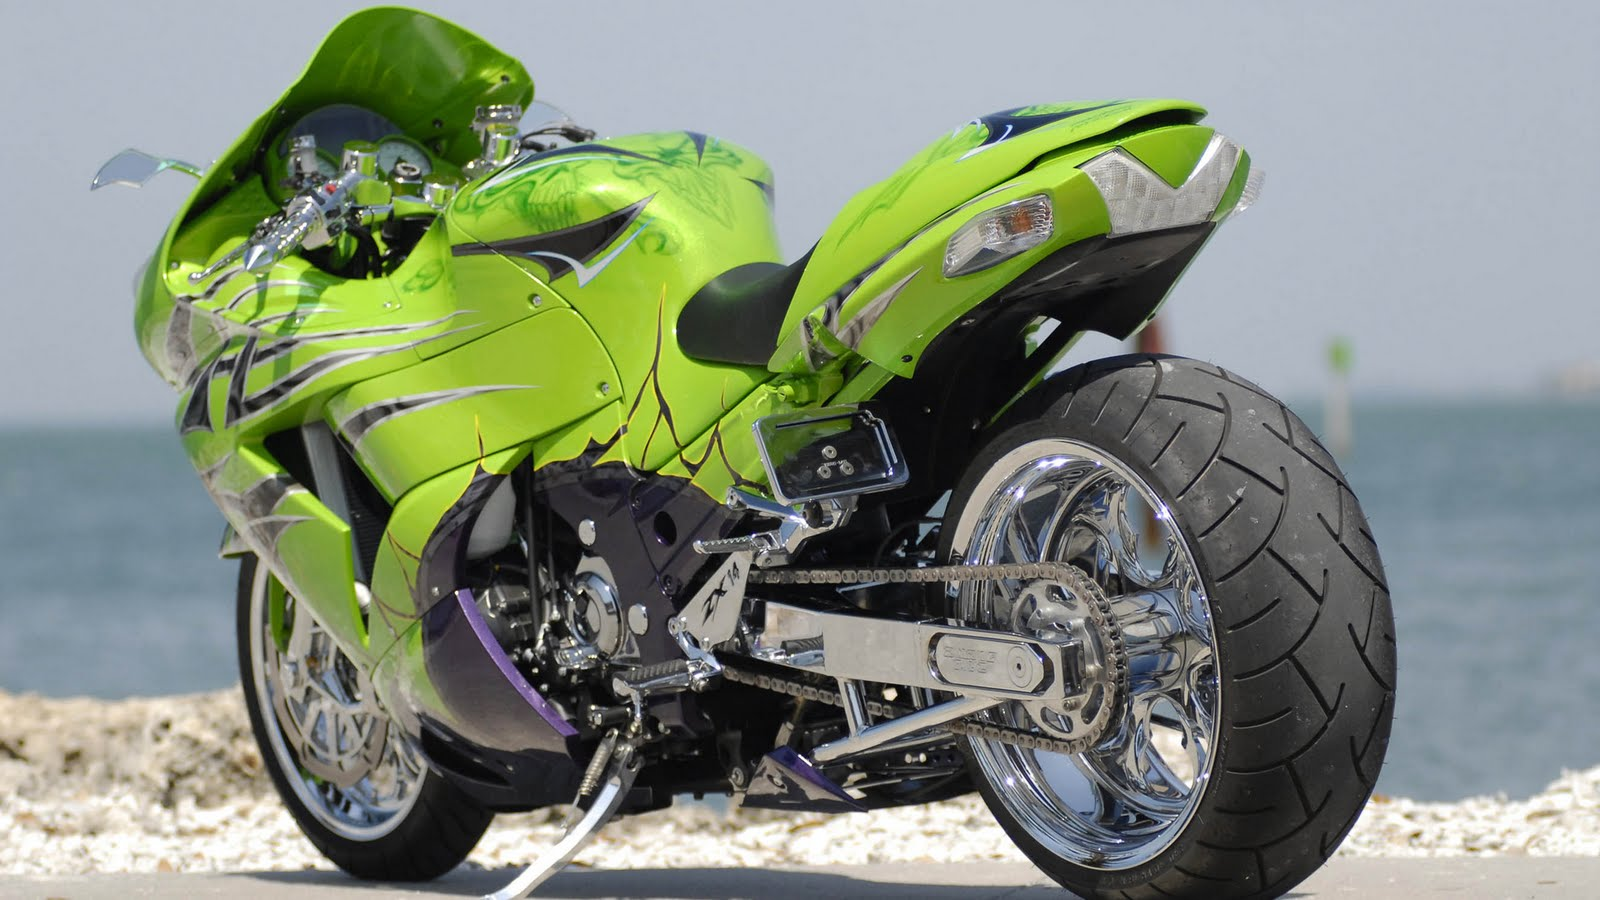 Motor Cycle Wallpaper HD: Latest Have Bikes Model HD Wallpapers